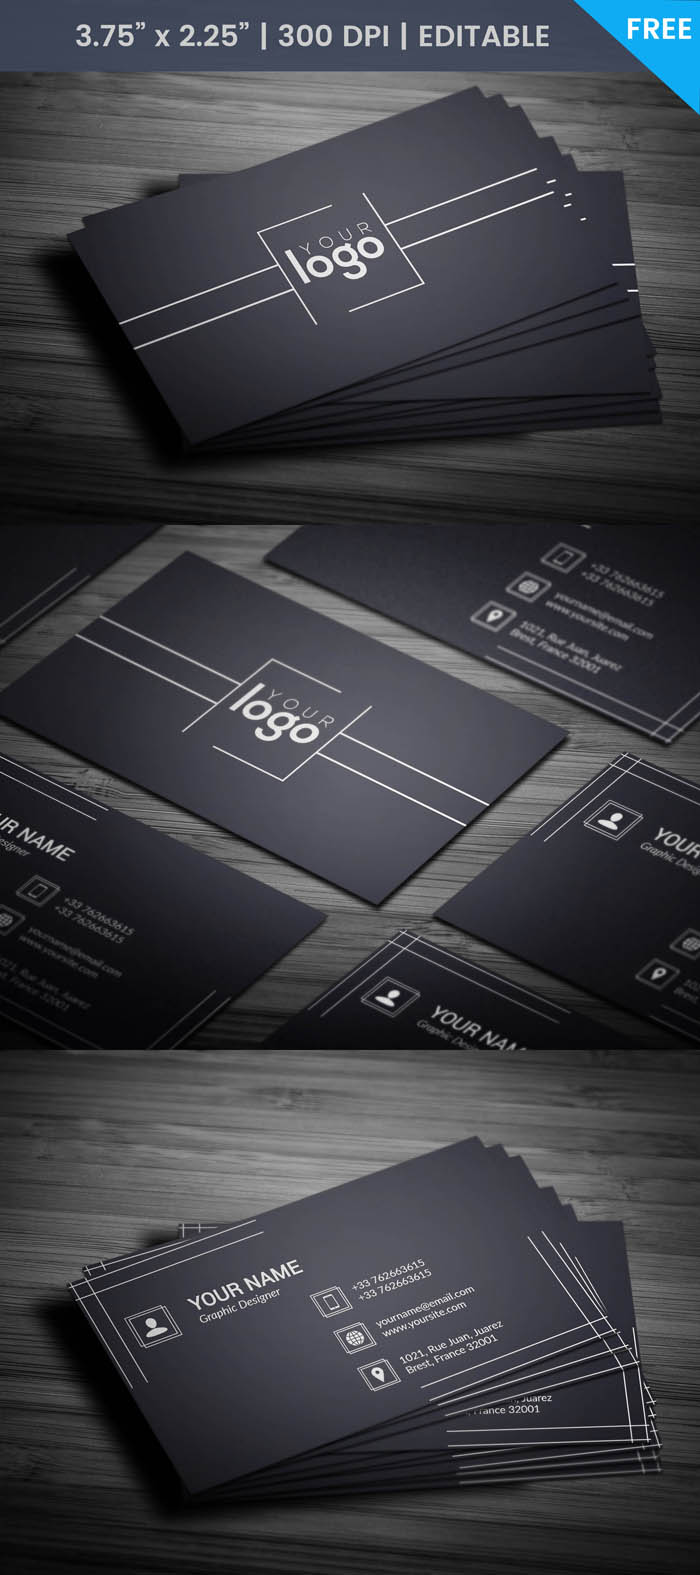 Free Fashion Photographer Business Card Template